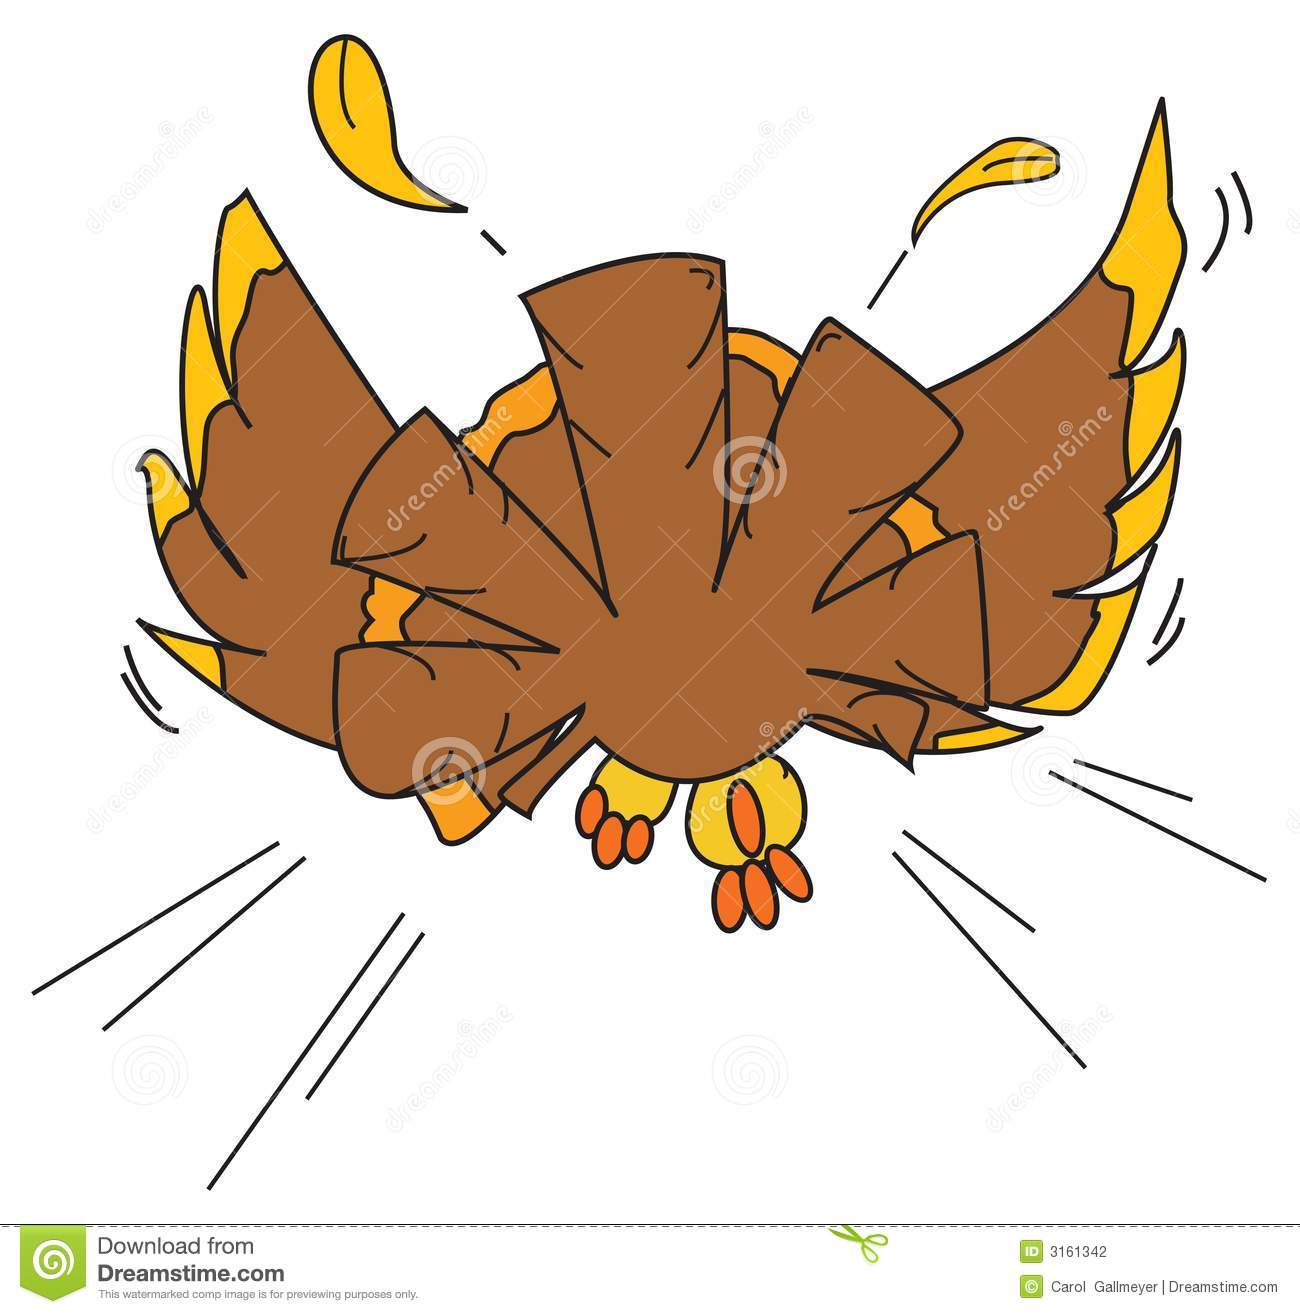 Running Cartoon Turkey Stock Photos, Images, & Pictures.